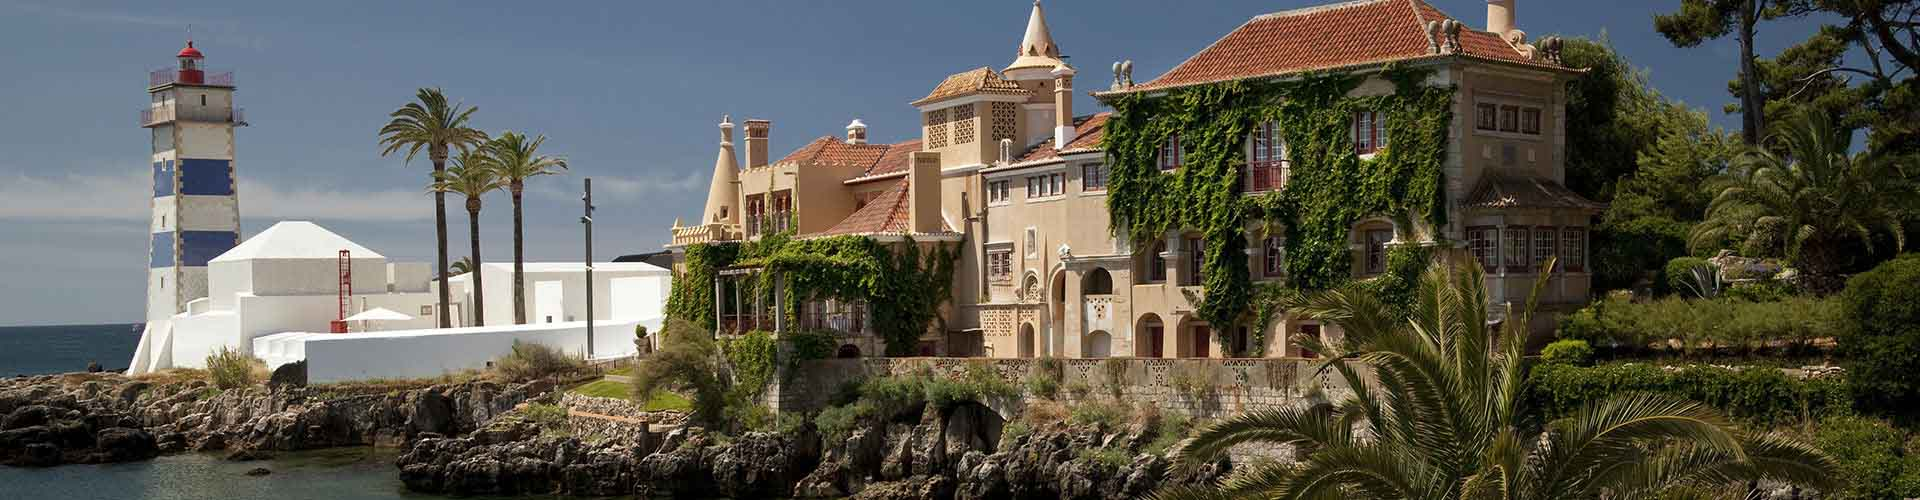 Cascais – Student homestays in Cascais. Maps of Portugalsko, photos and host family reviews for each student homestay in Cascais.